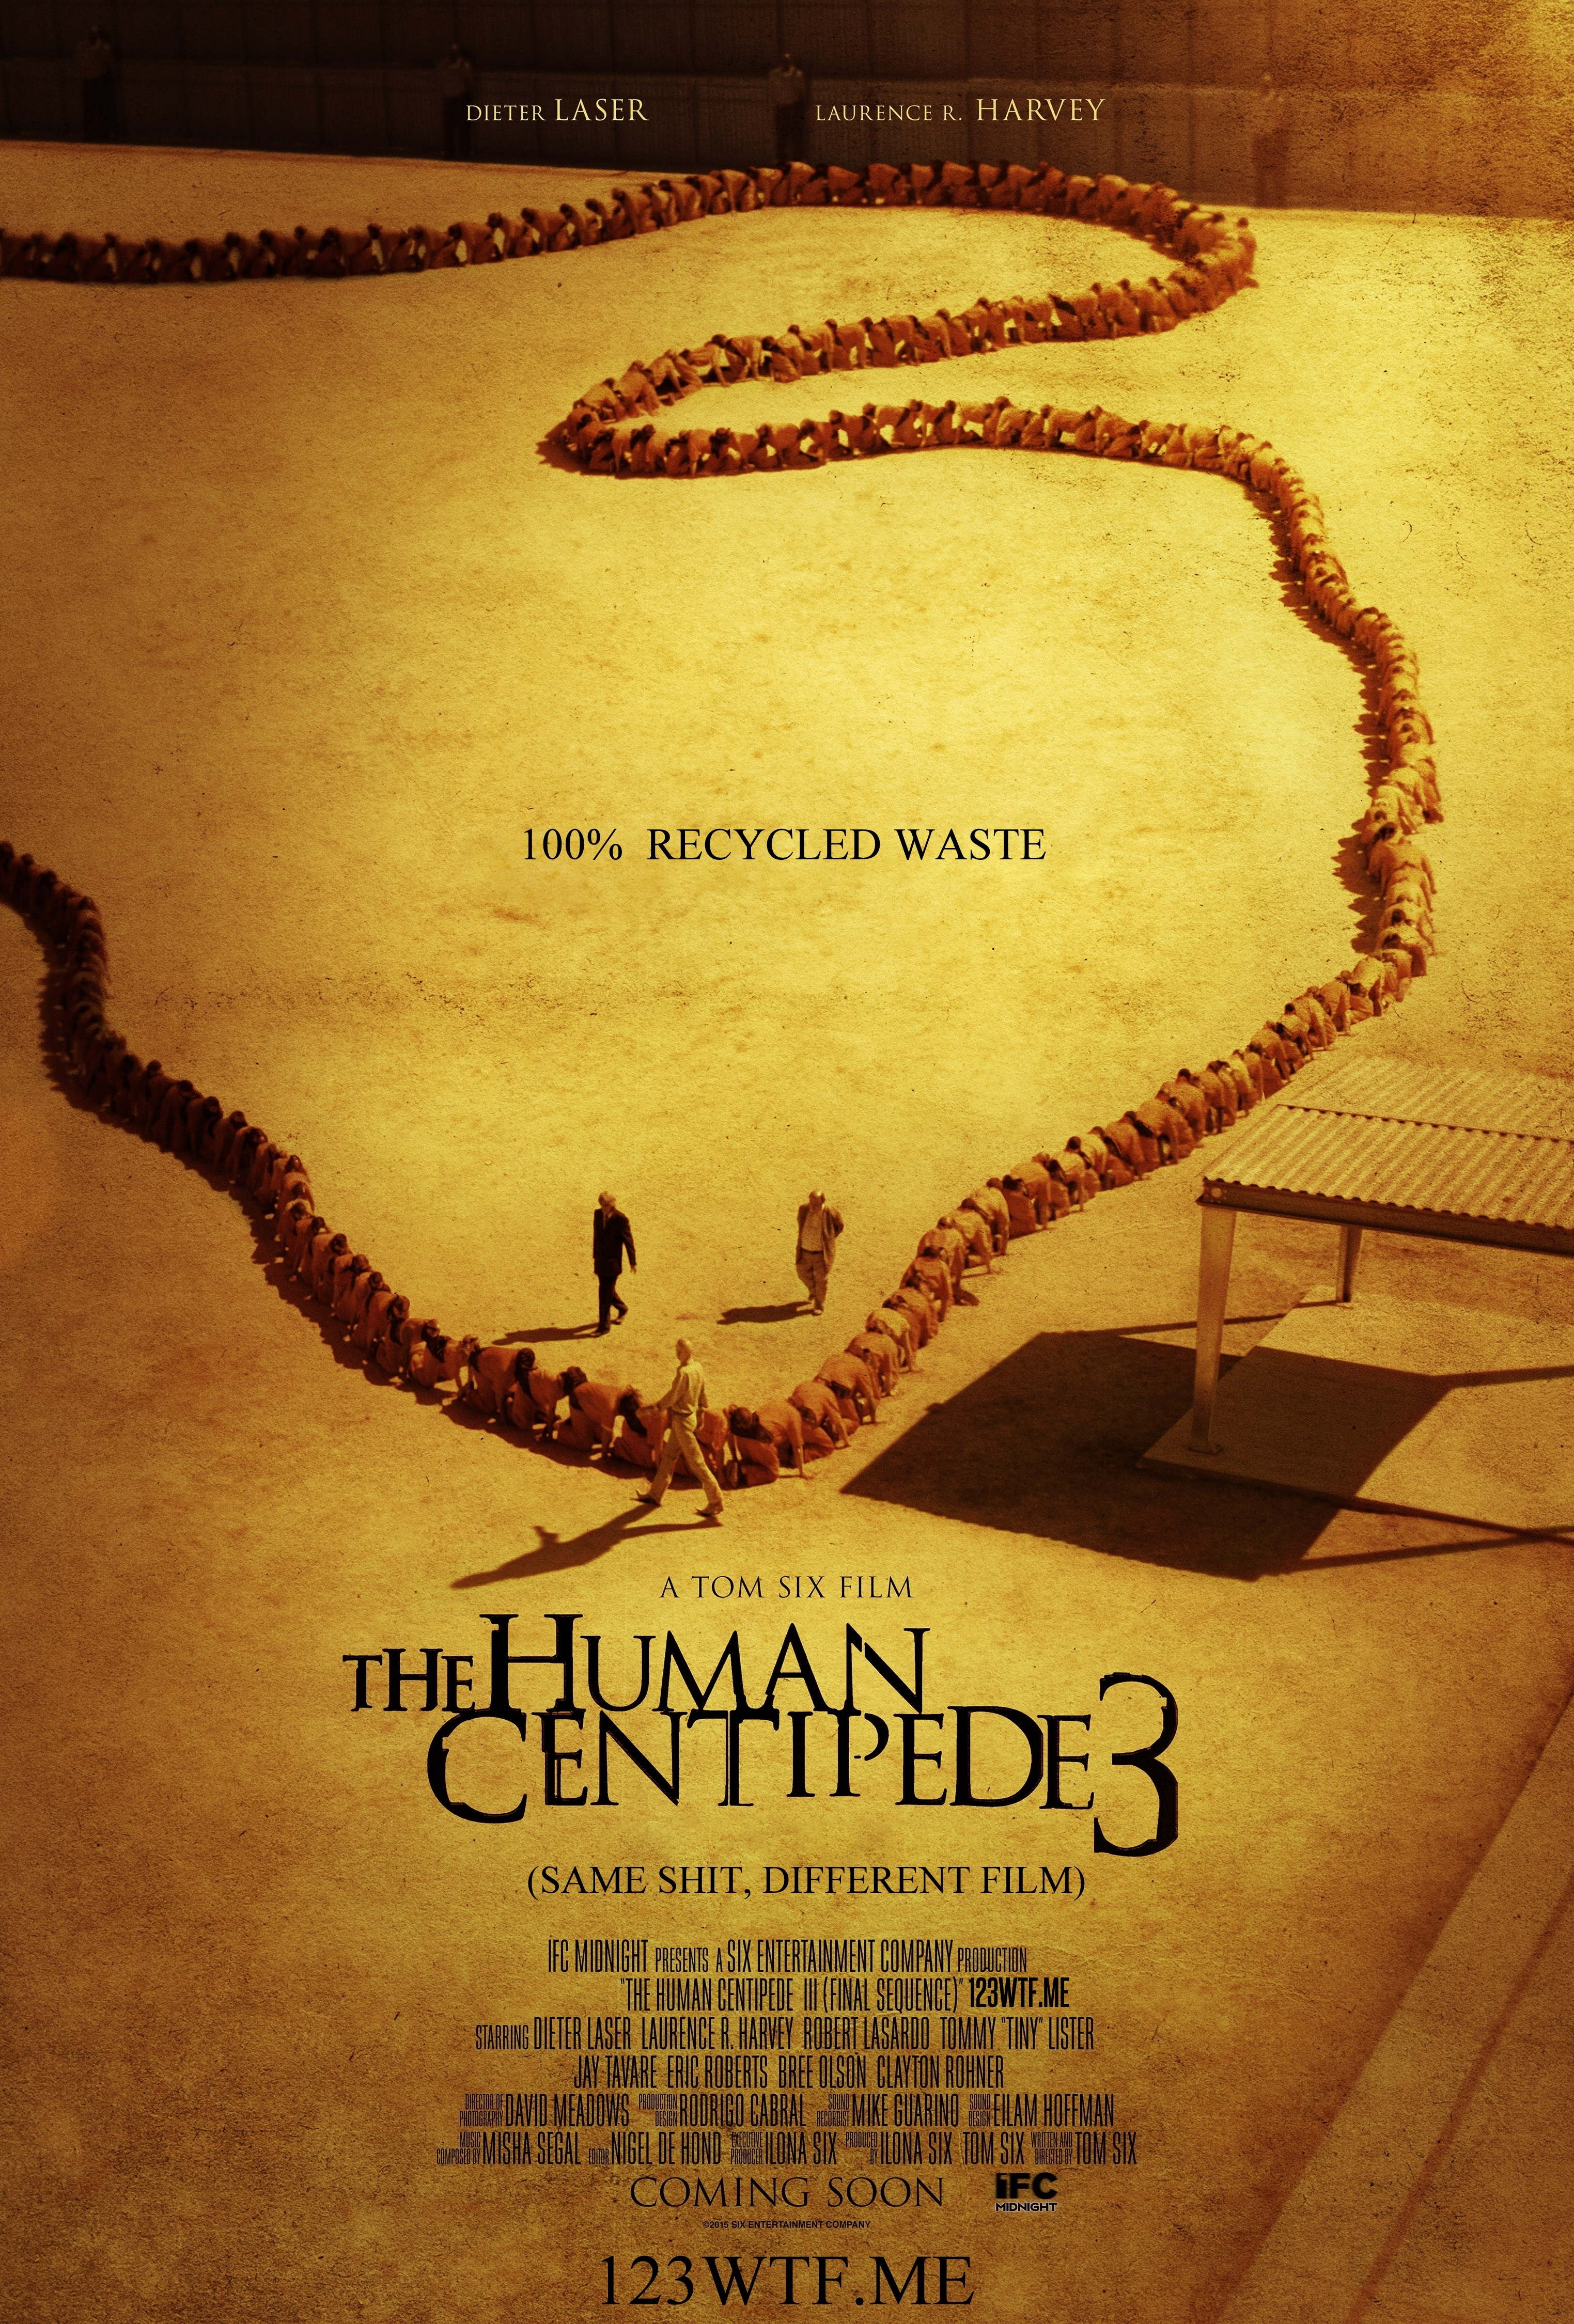 human centipede castration – 1,2,3 WTF!? (Watch the Film)